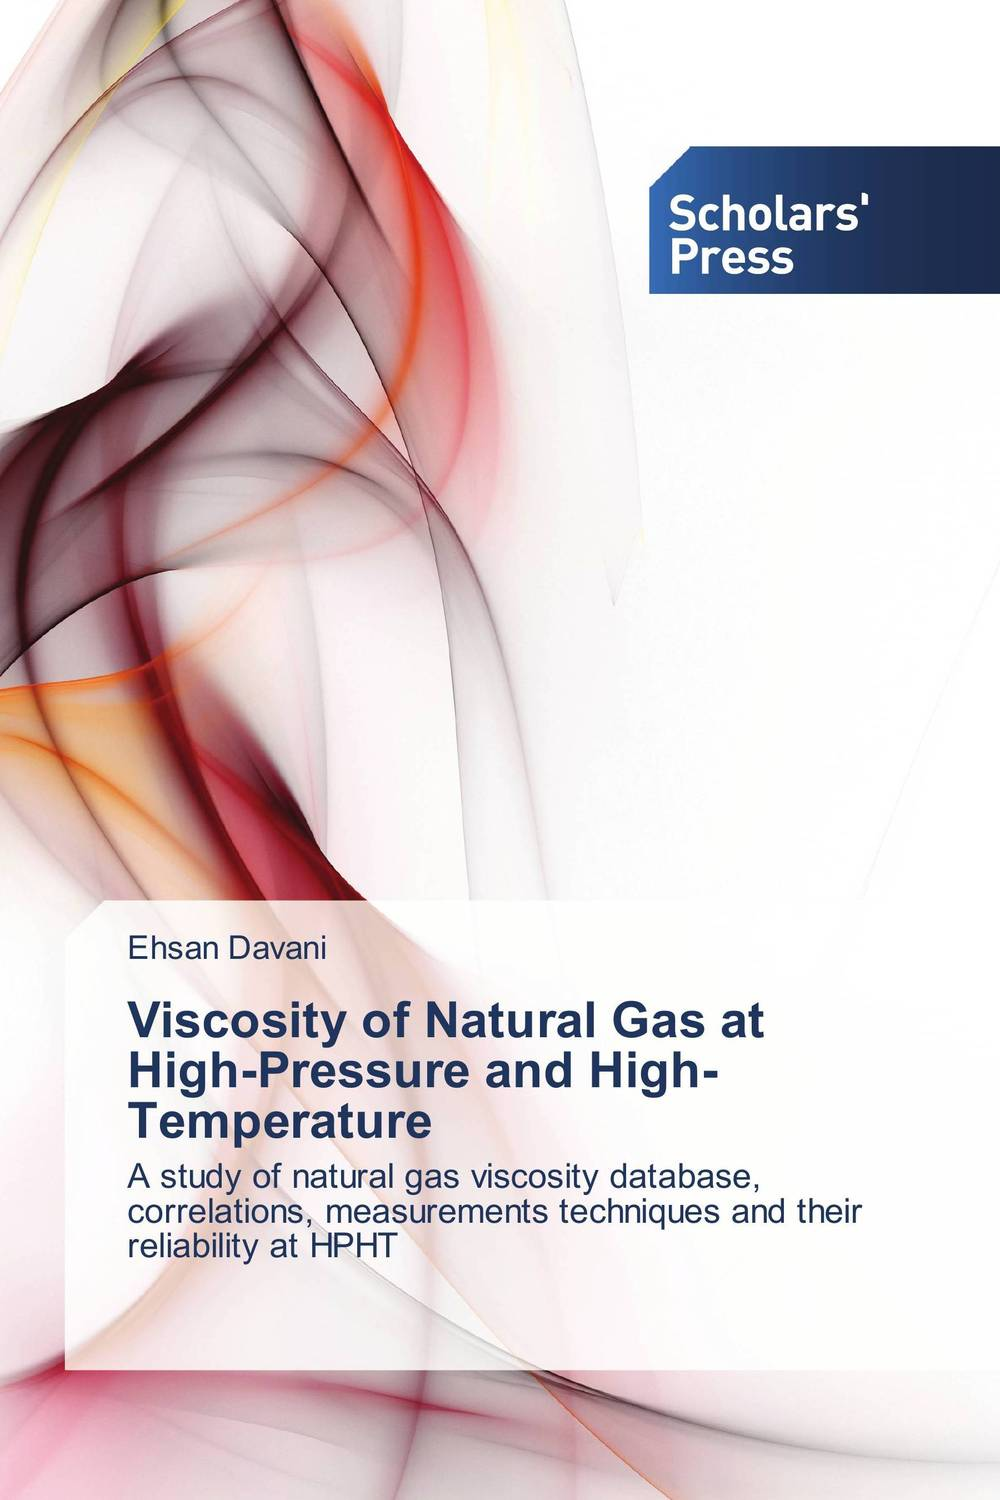 Viscosity of Natural Gas at High-Pressure and High-Temperature the influence of fire and elevated temperature on nec hsc and uhsc